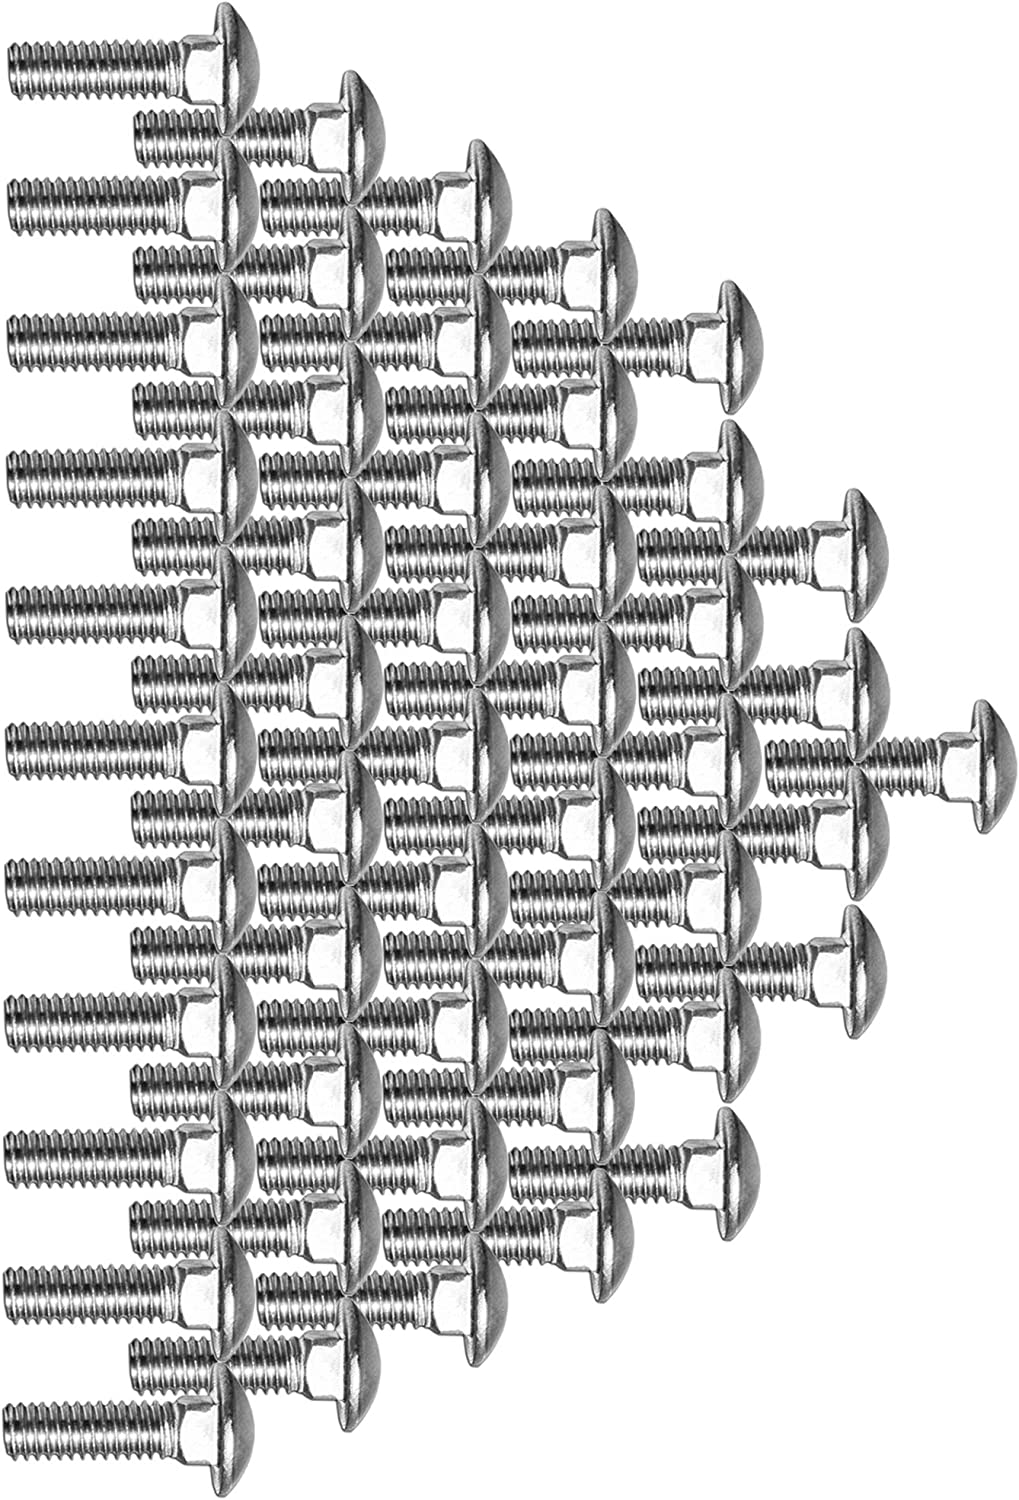 Super-Deals-Shop Stainless Steel Bolt Carriage Bolts Screws Pack Silver Lag Bolts Round Head Fasteners Carriage Bolt Elevator Bolts Full Thread 3//8-16 x 1 10 Pcs